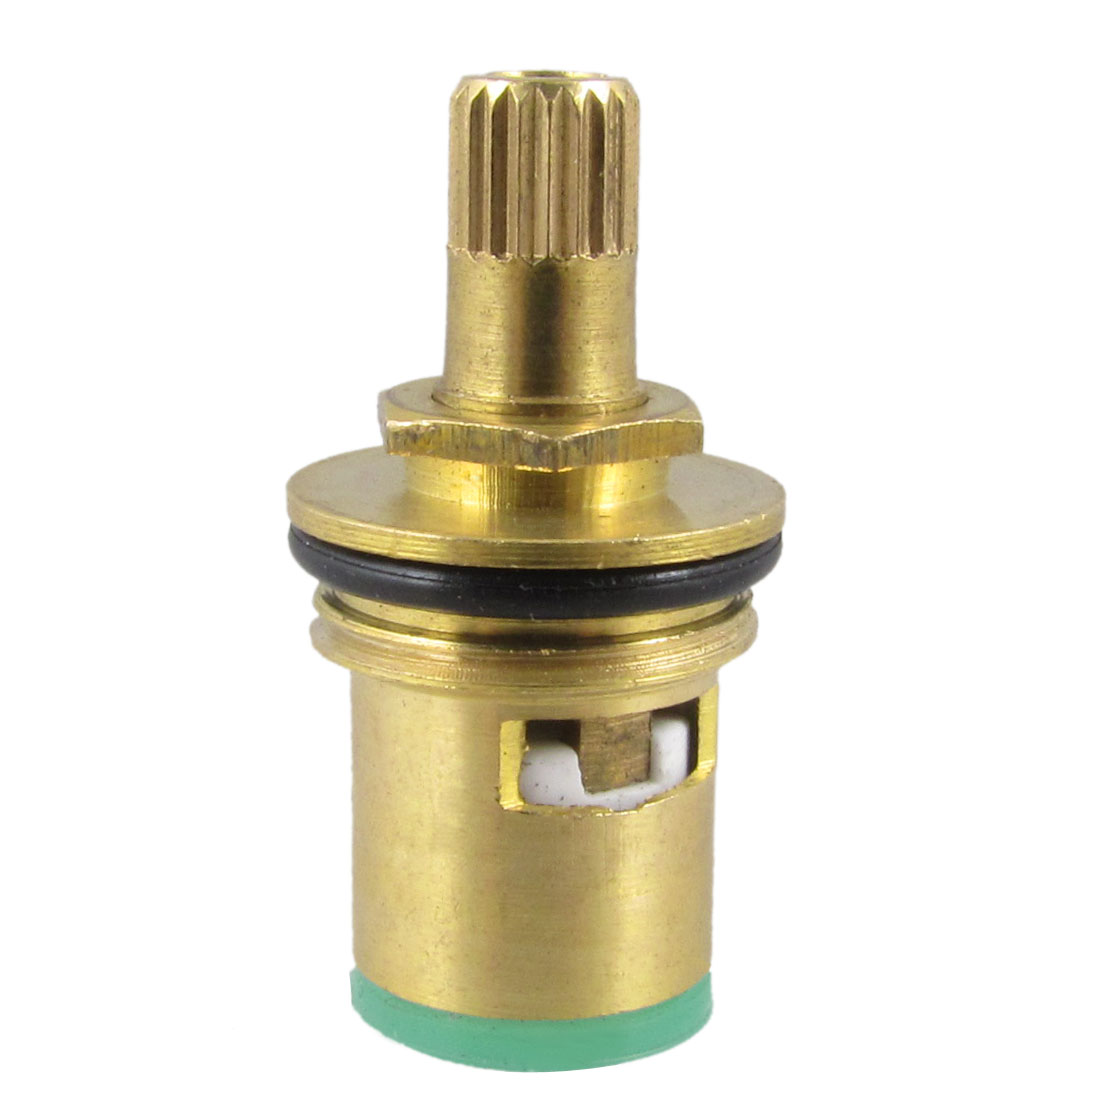 5mm Female Thread Ceramic Core Brass Faucet Cartridge Valve Gold Tone